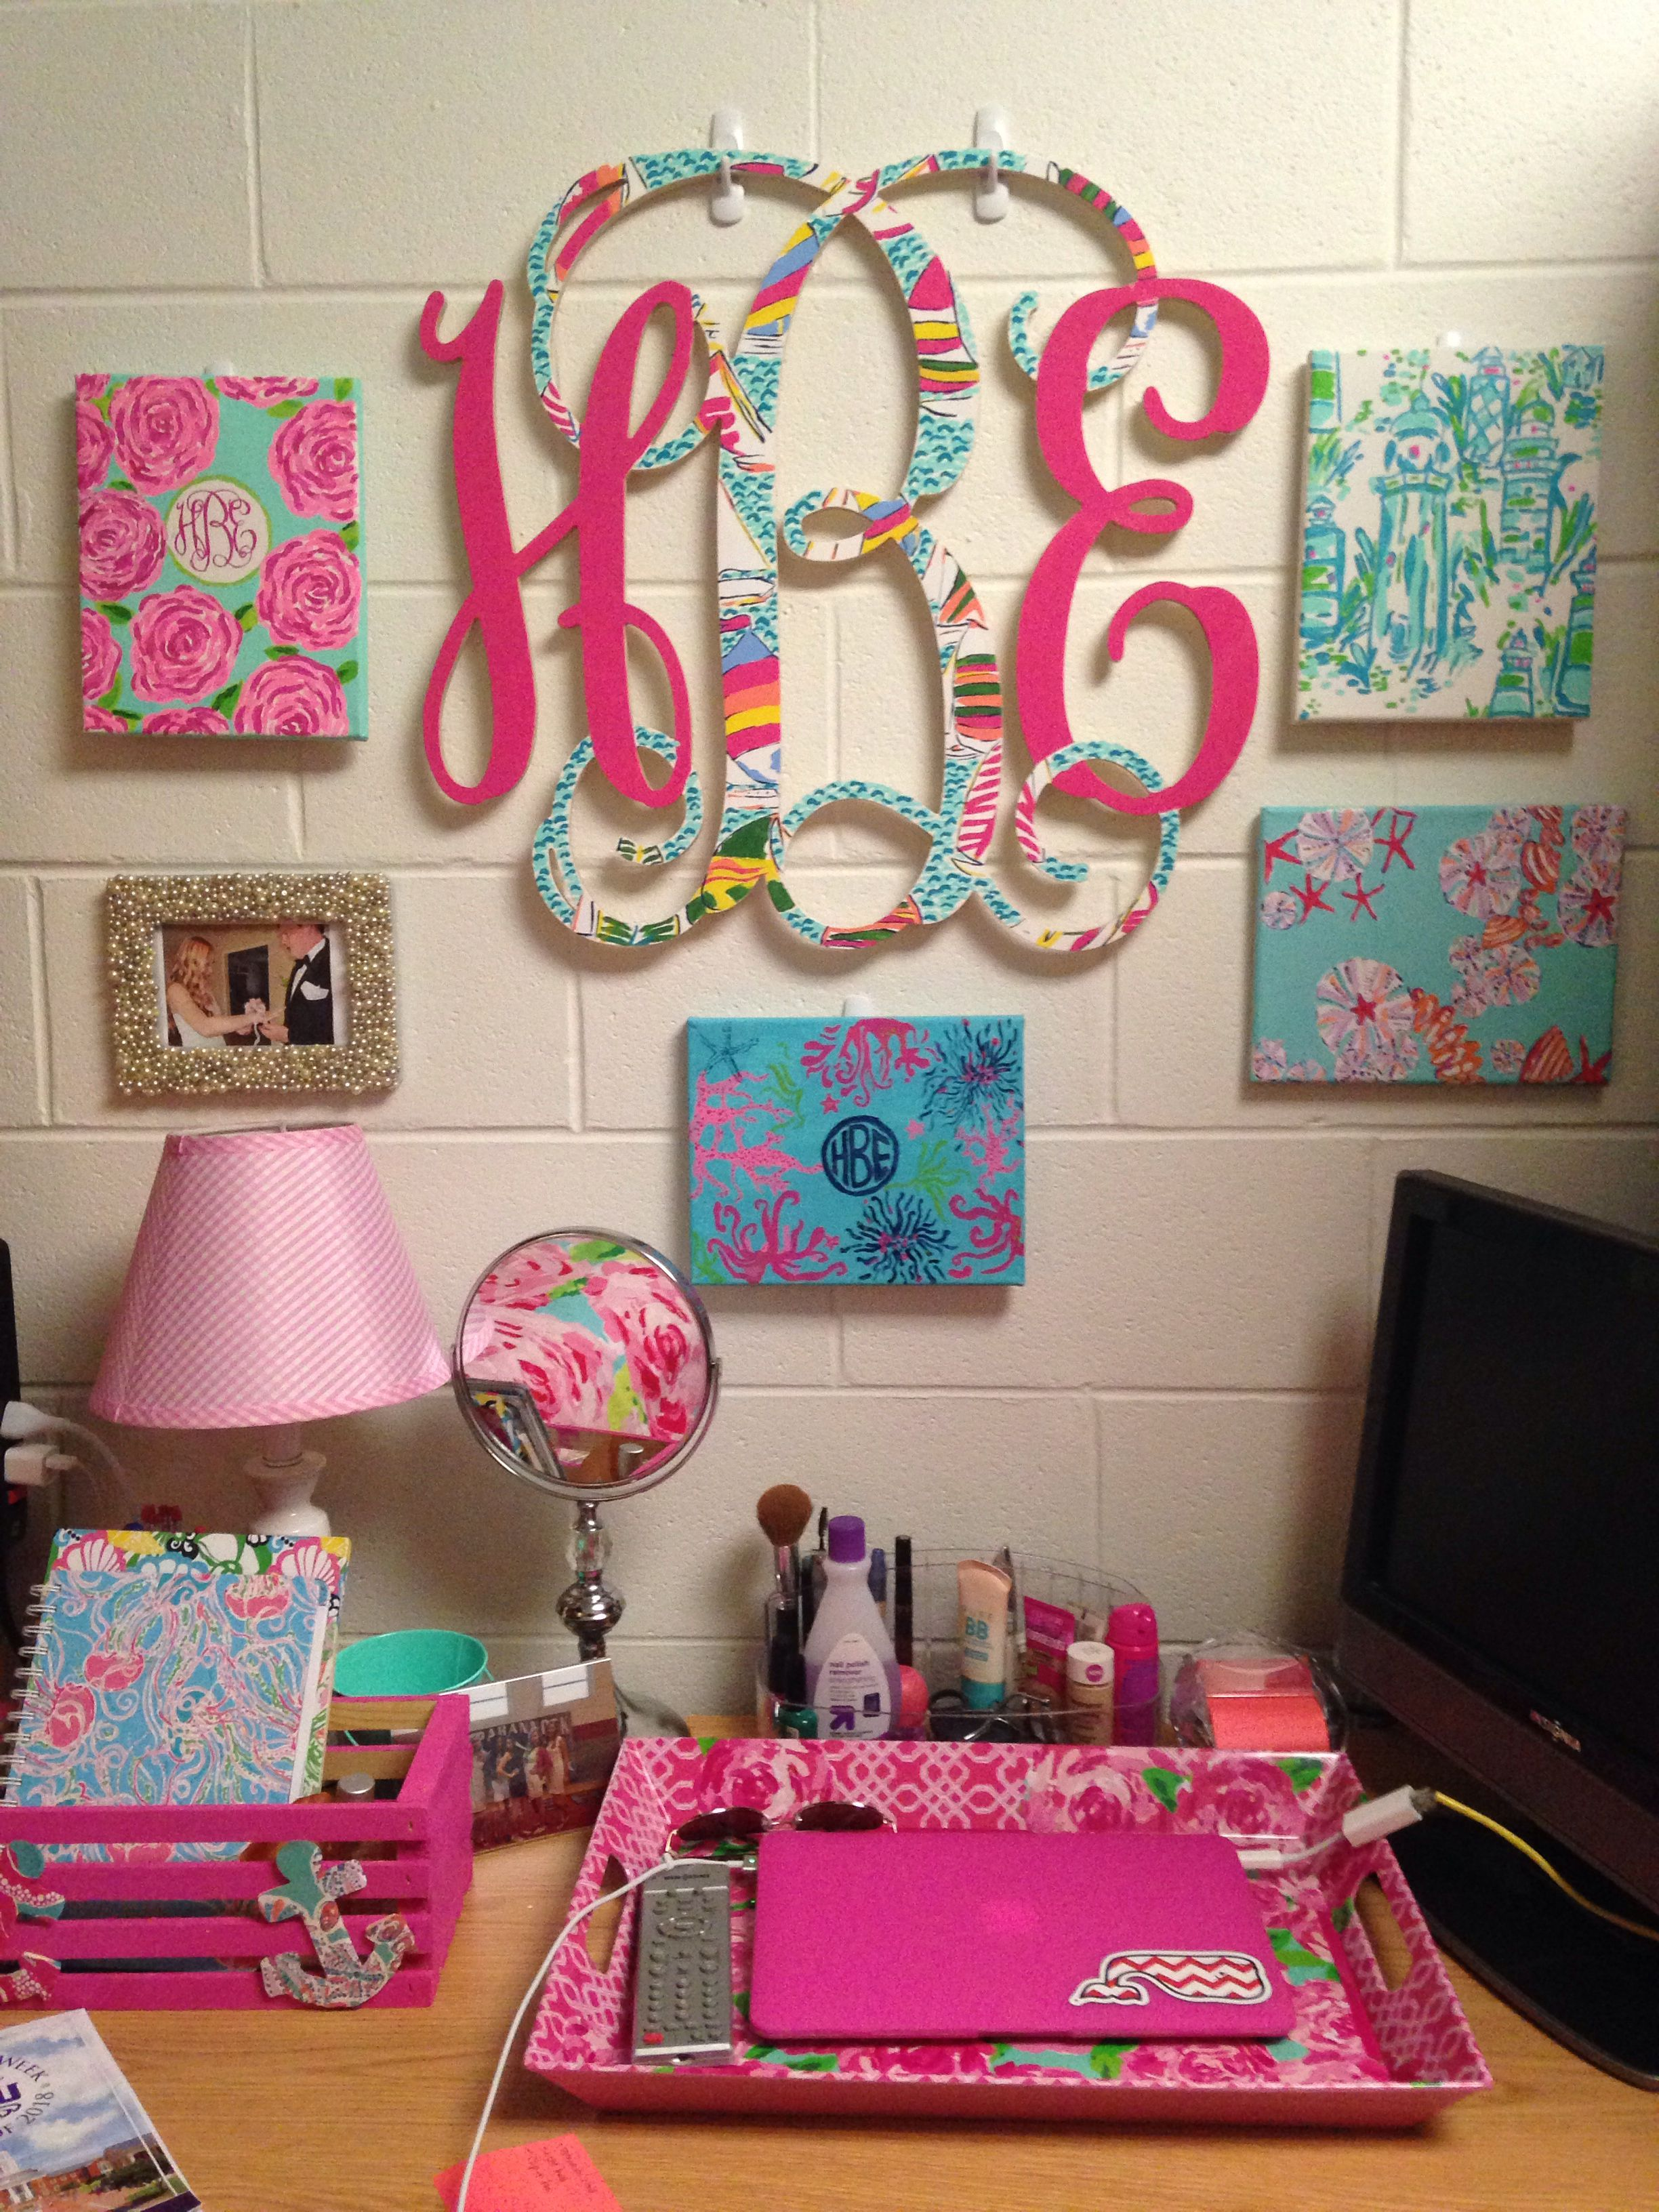 Merveilleux Hand Painted Lilly Pulitzer Desk Decorations! My Desk At College!